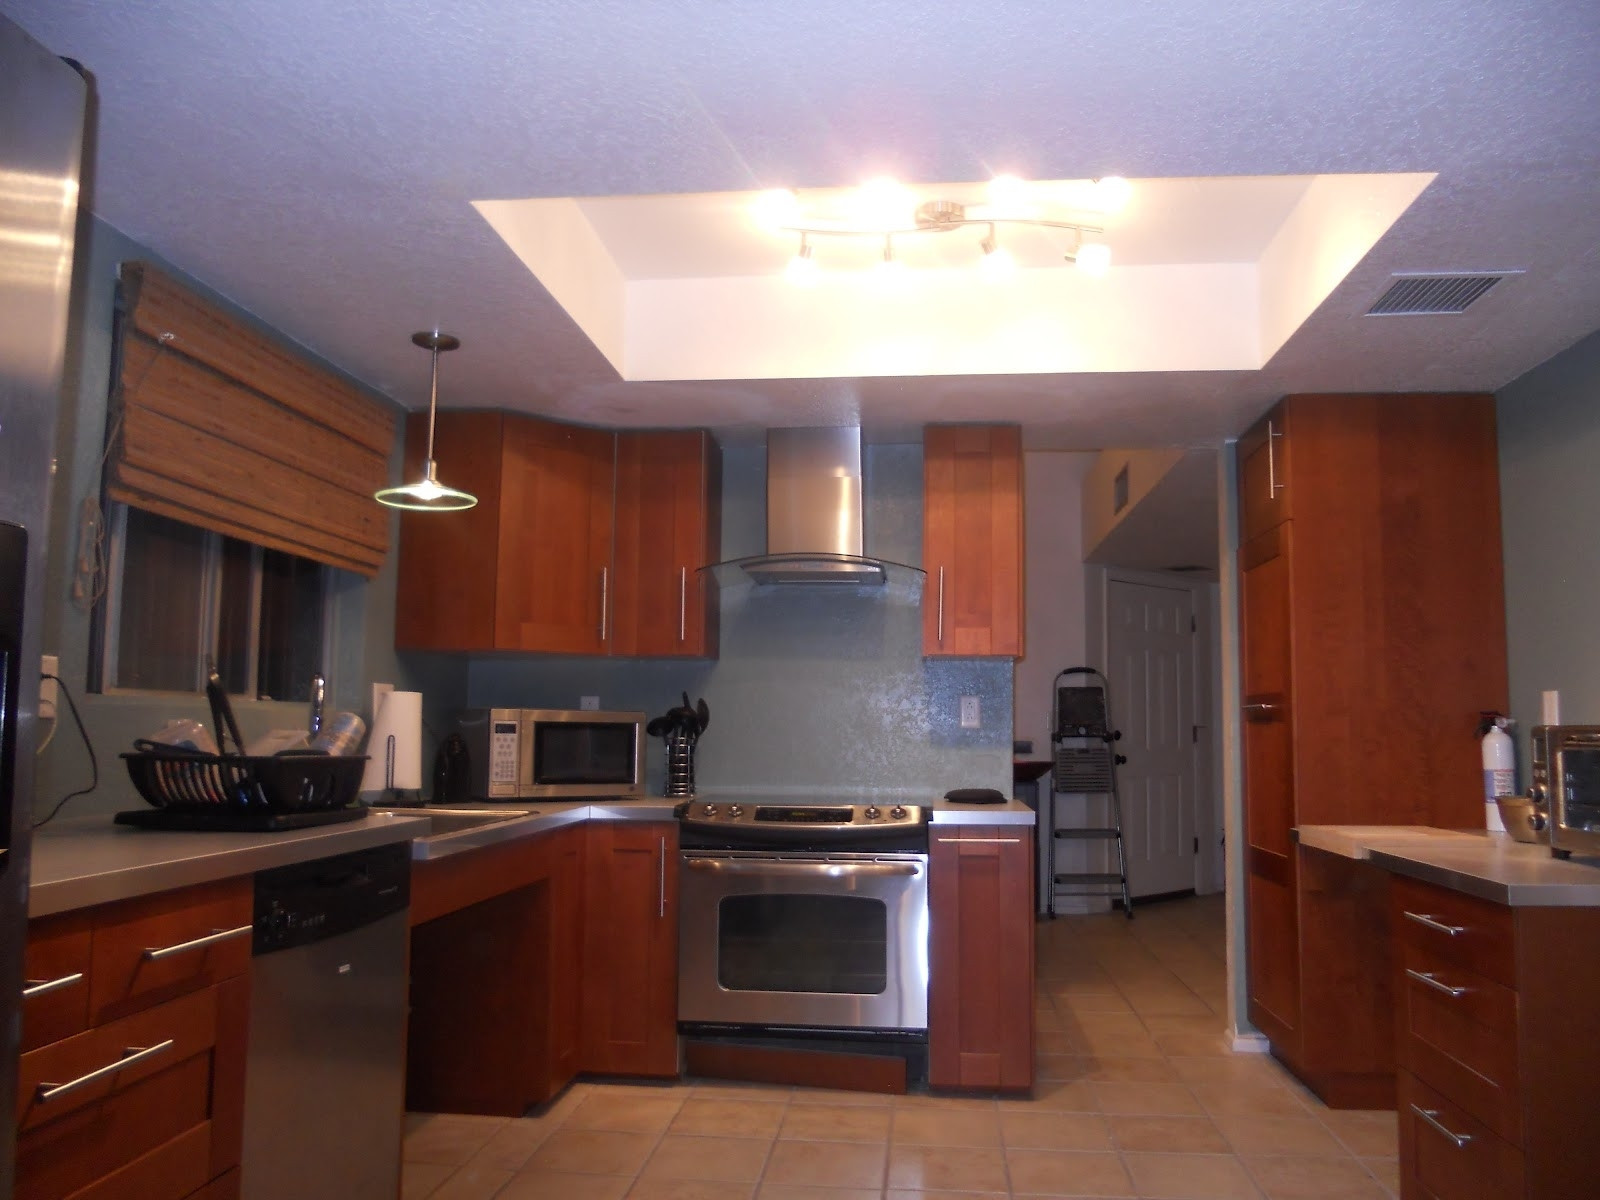 Best ideas about Ceiling Lights For Kitchen . Save or Pin Kitchen Led Kitchen Ceiling Lights Inside Fantastic Now.